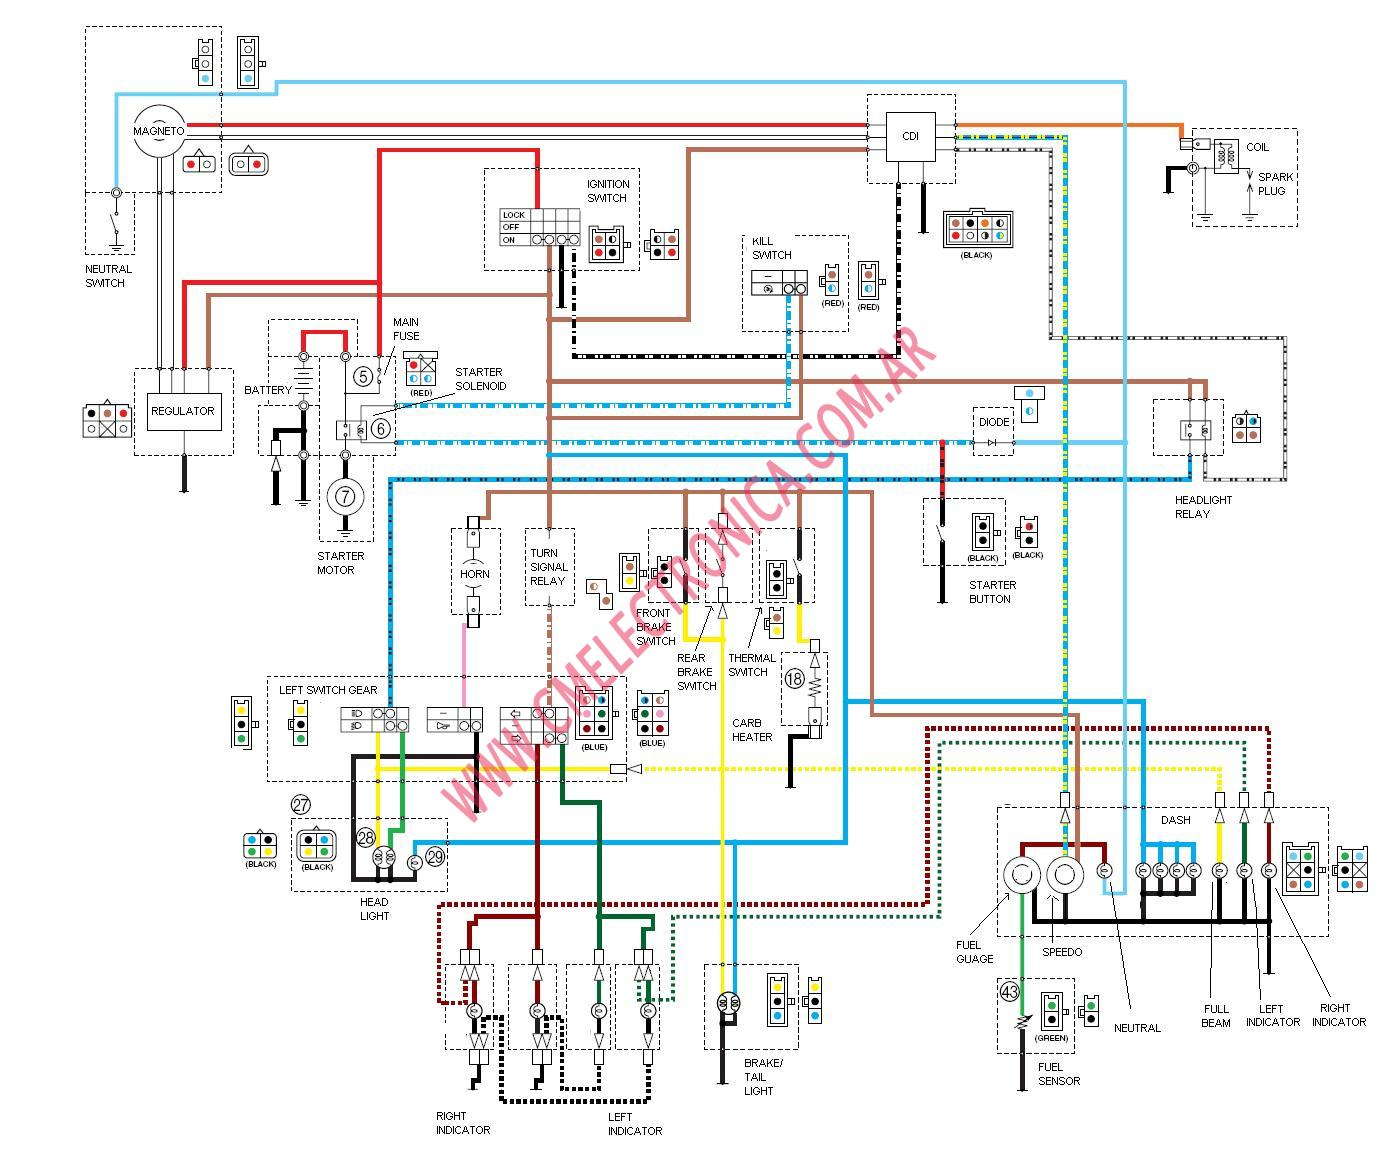 Yamaha Ybr 125 Fuse Box Location Wiring Diagram Will Be A Thing 300 Kawasaki Bayou Free Engine 2008 Review Alloy